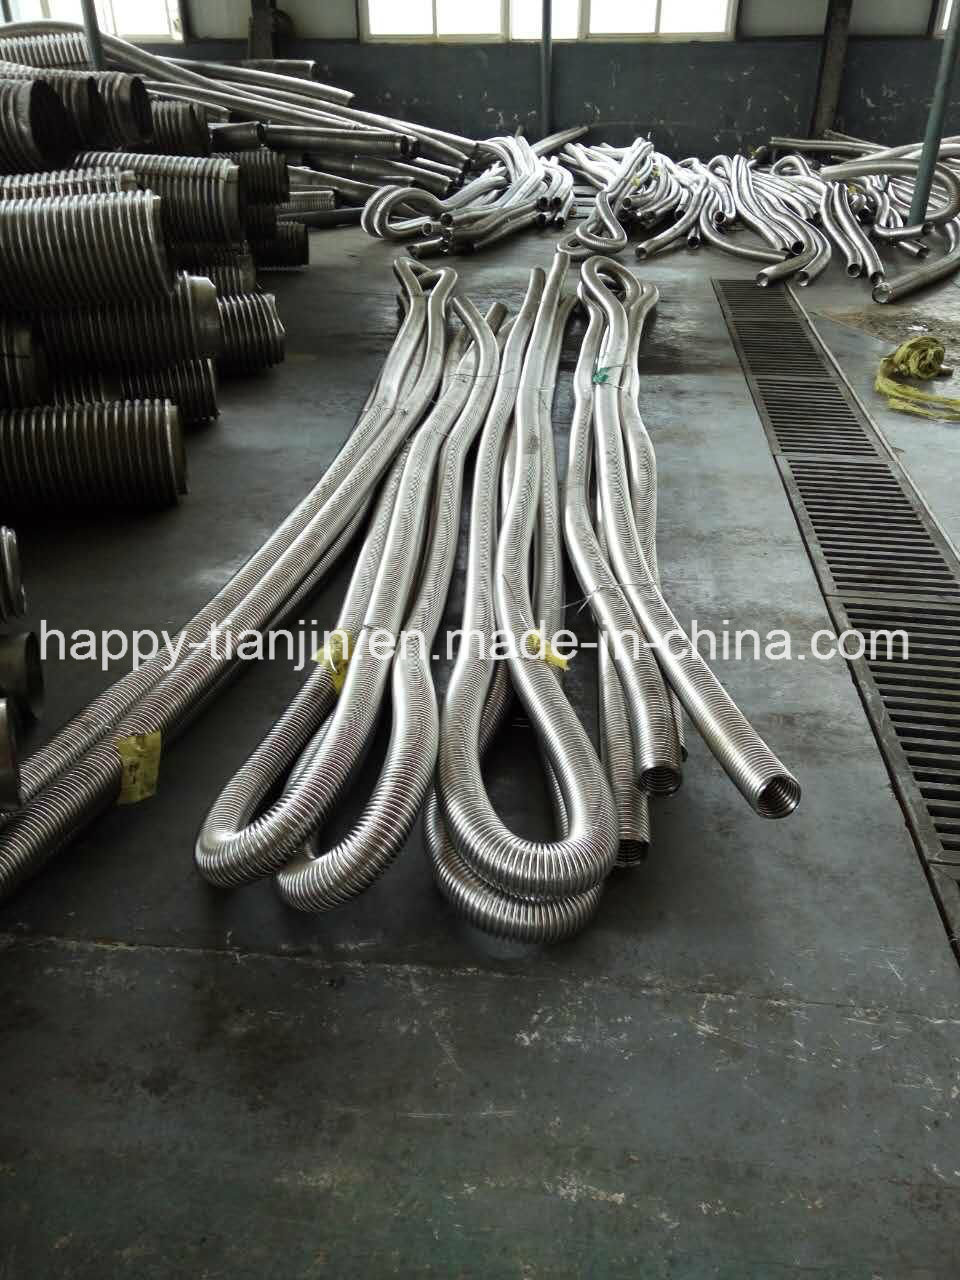 Annular Tube Stainless Steel Wire Braid Flex Metal Hose Pipe